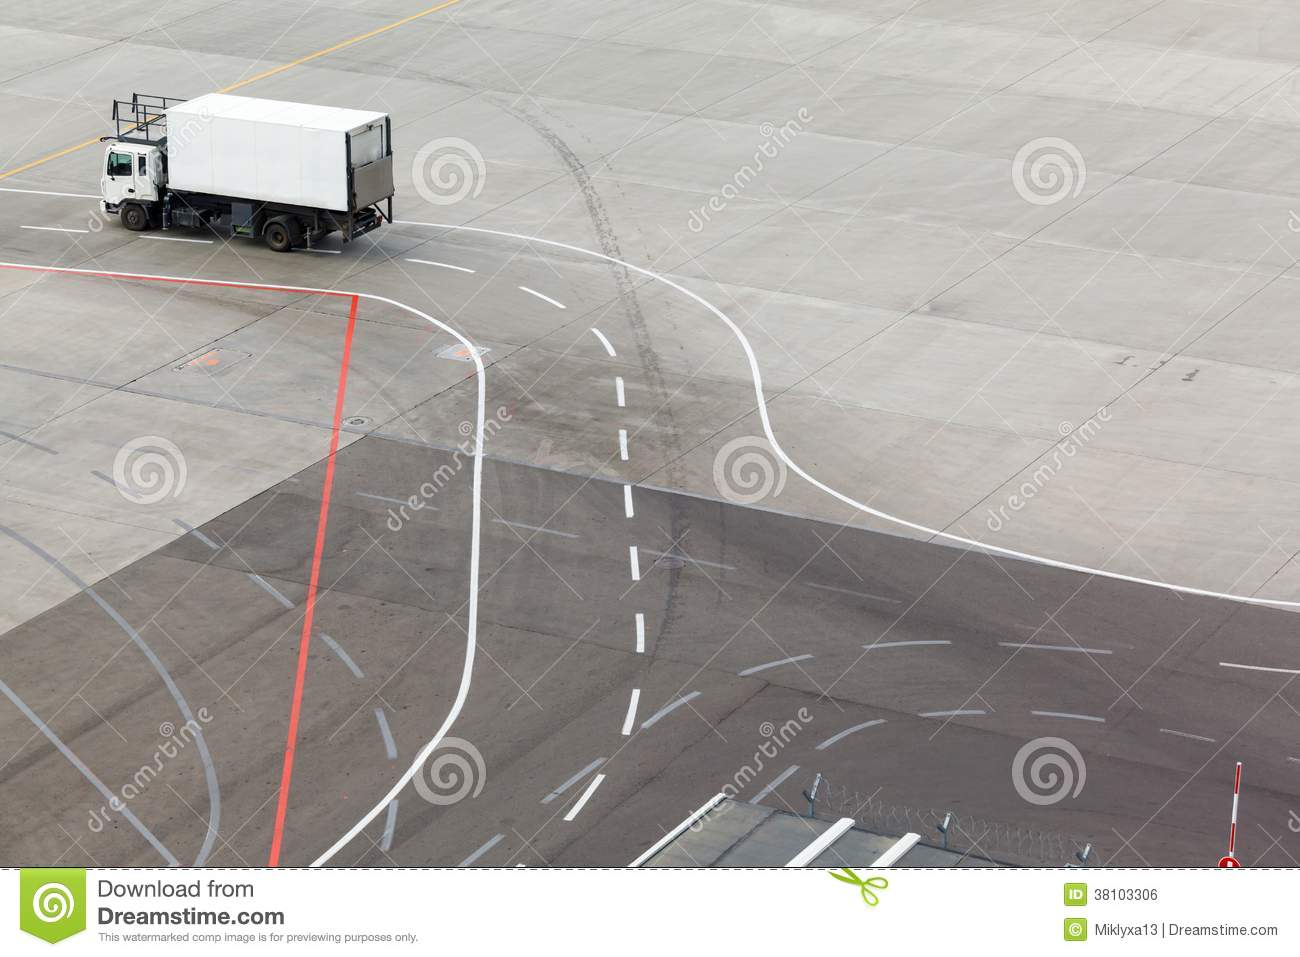 Truck, Airfield And Markings On Apron Stock Photo - Image of